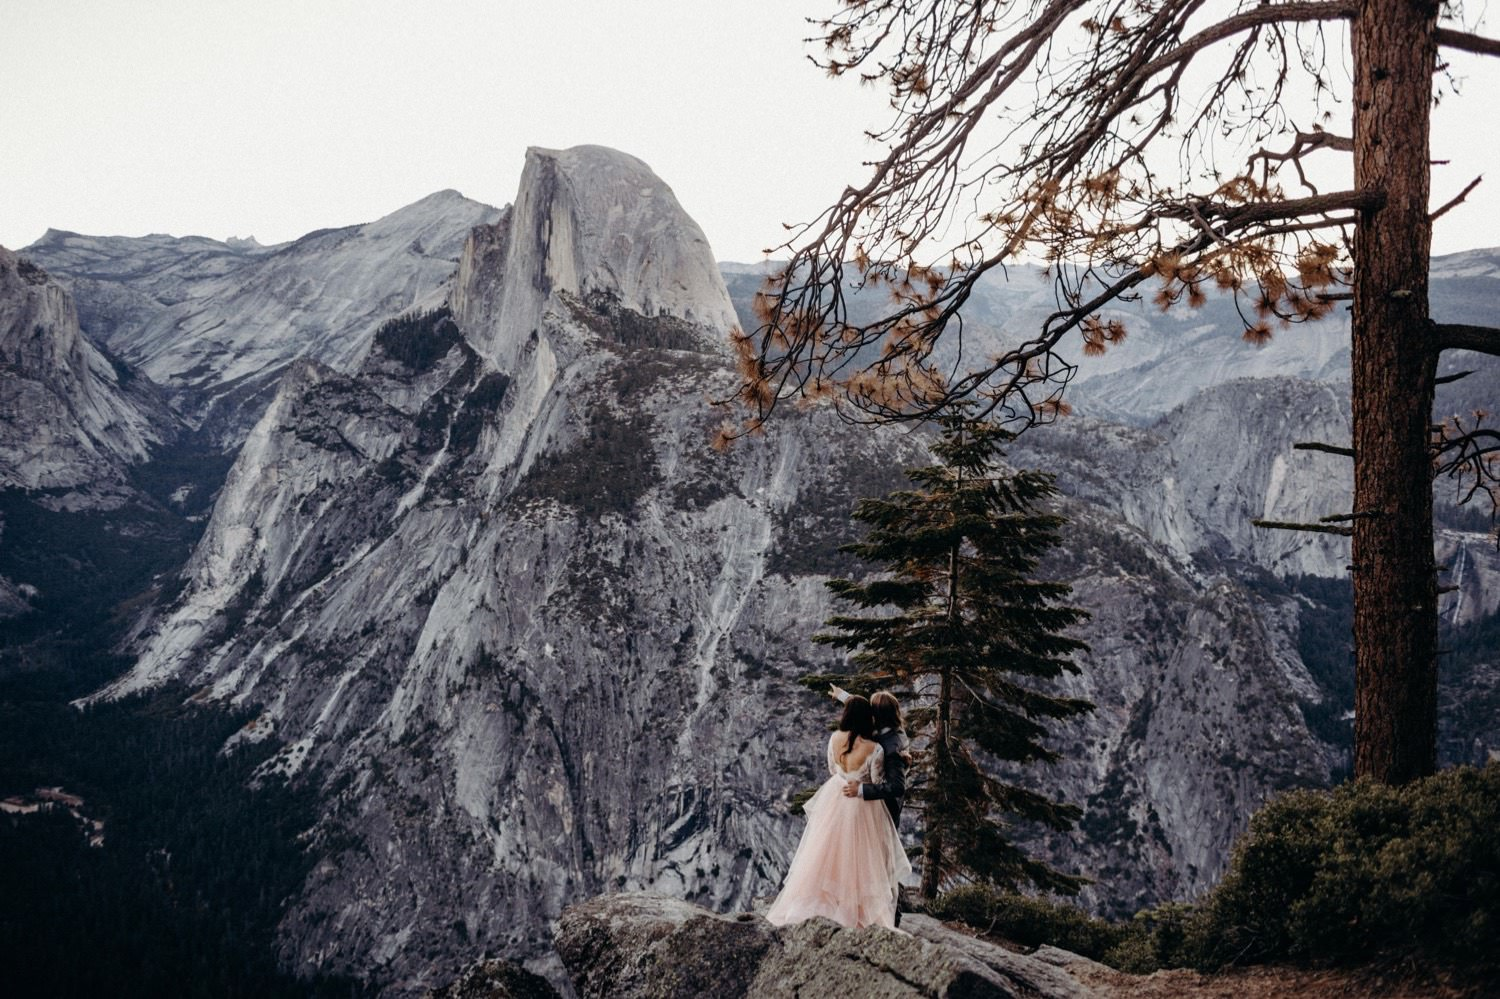 03_alex+matt-wedding-9_park_national_elopement_wedding_yosemite_intimate.jpg